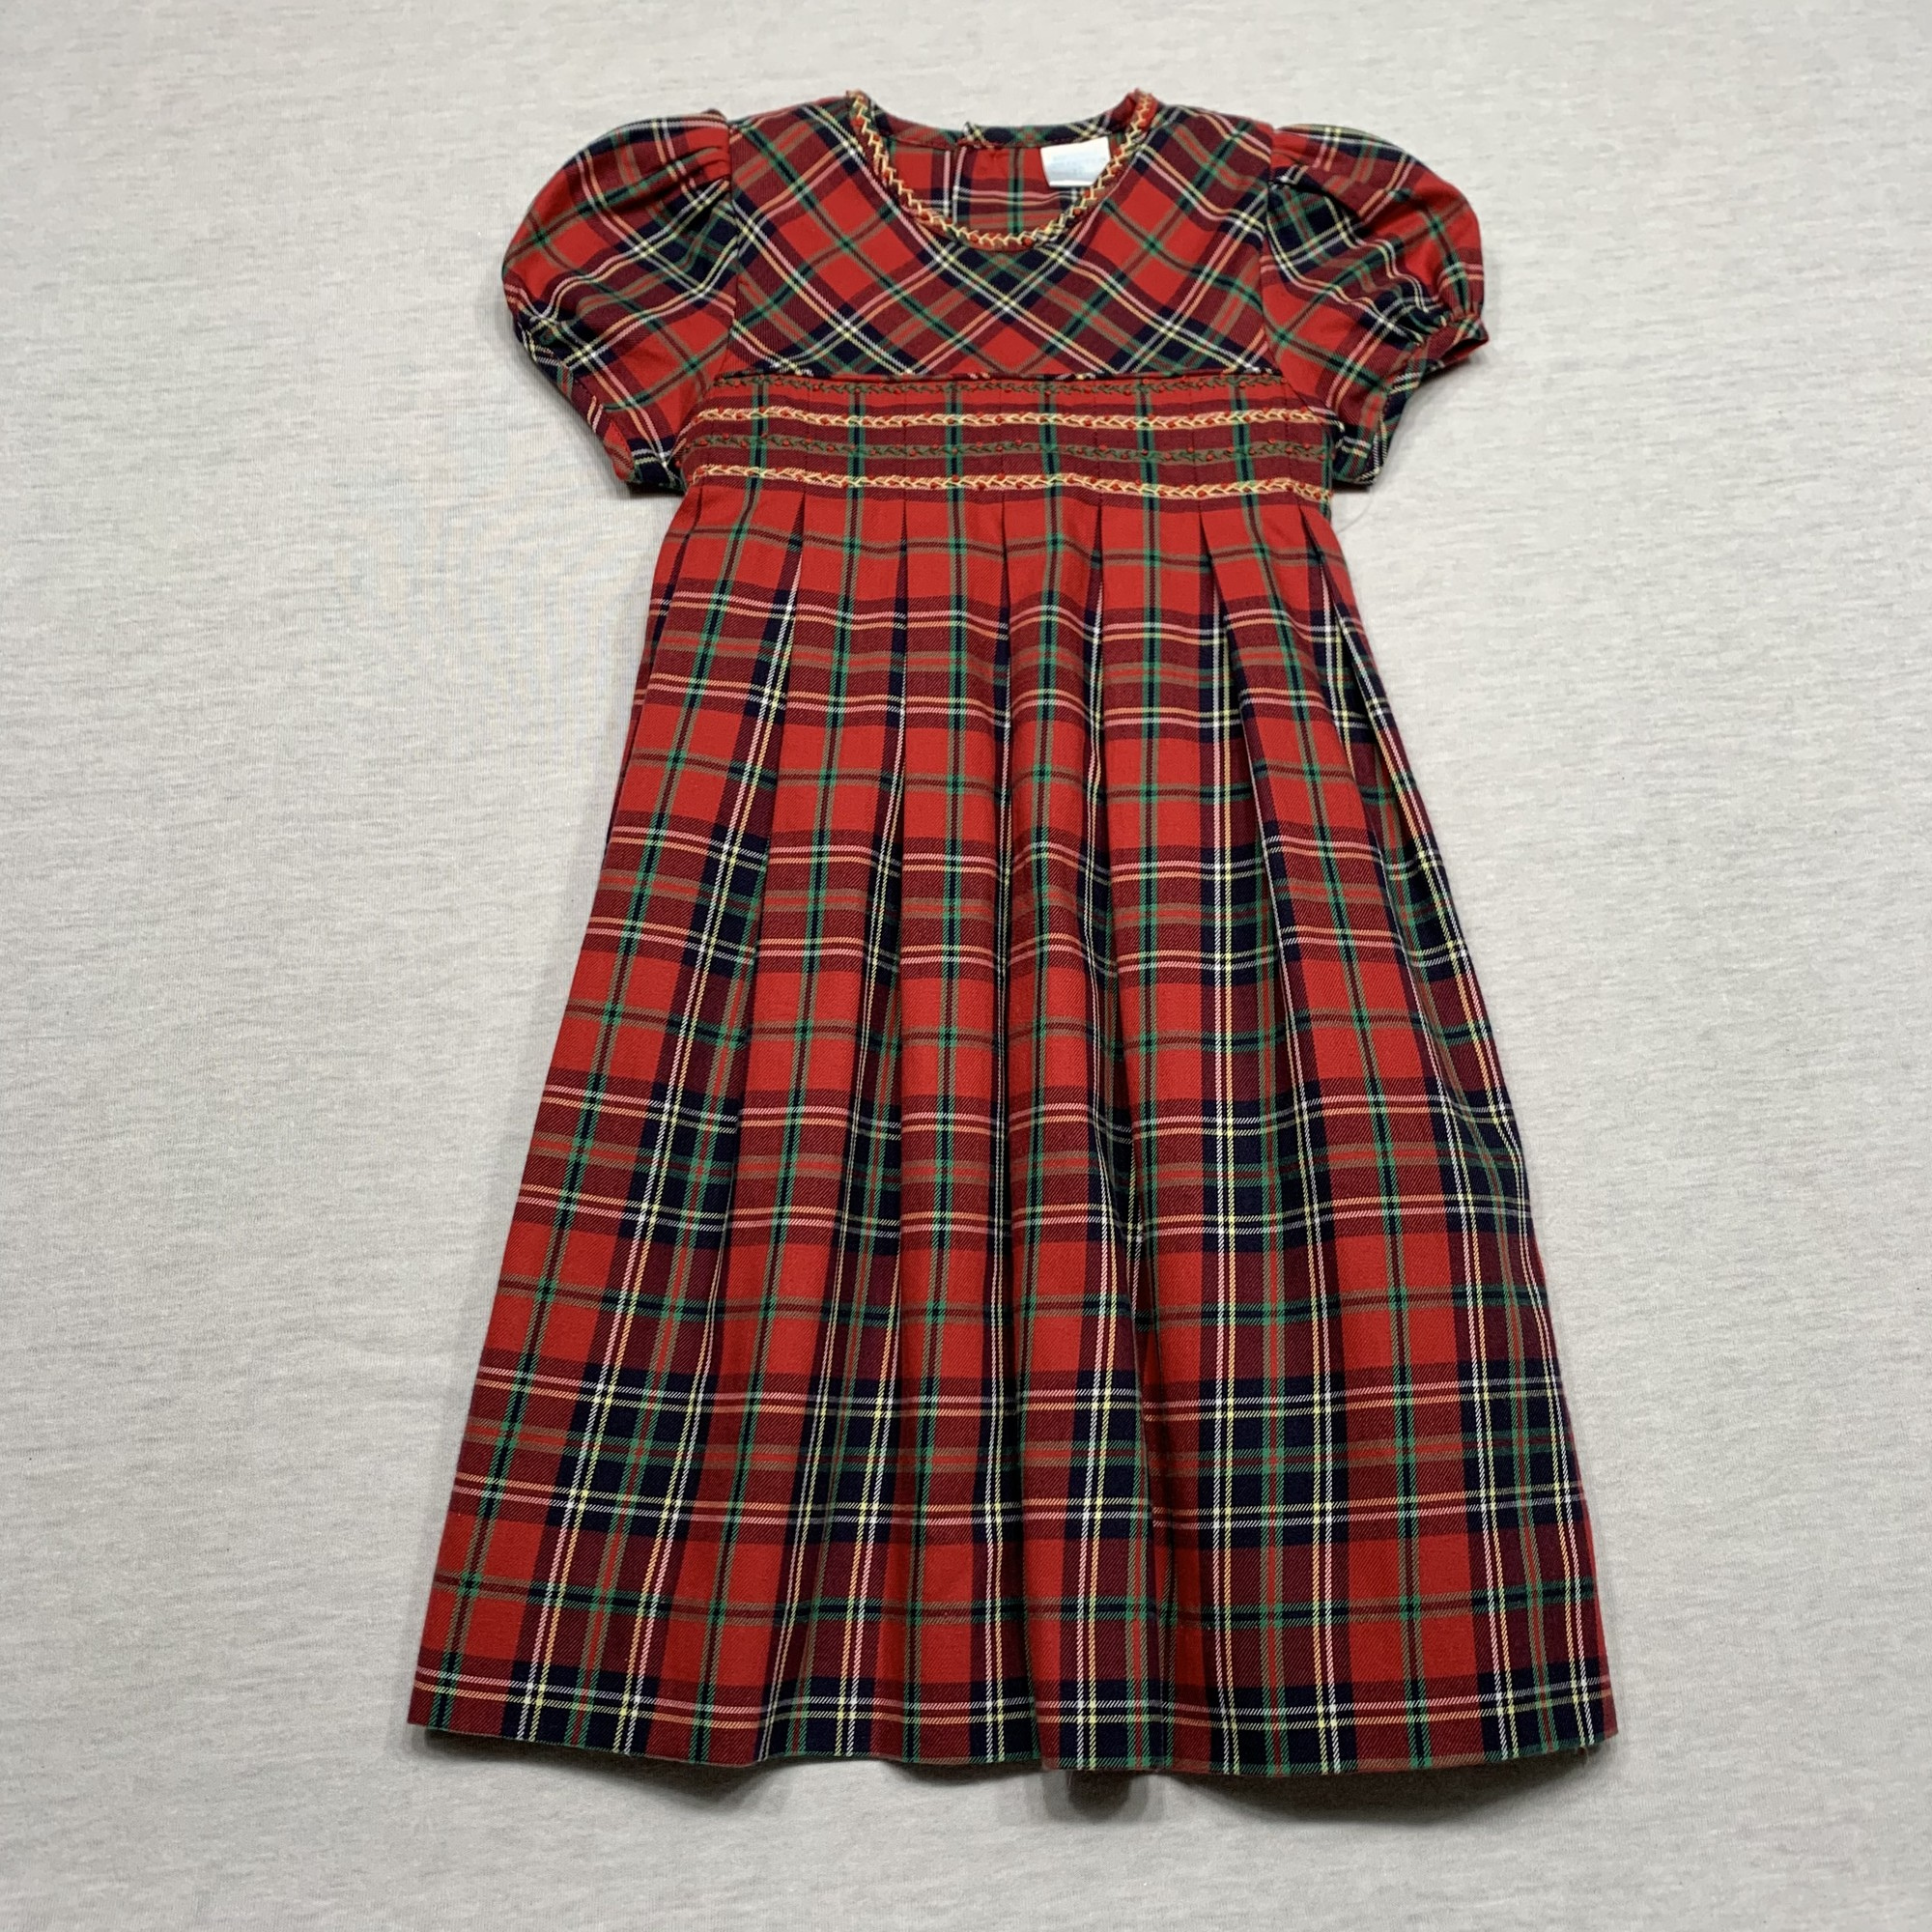 Plaid dress accented with embroidery